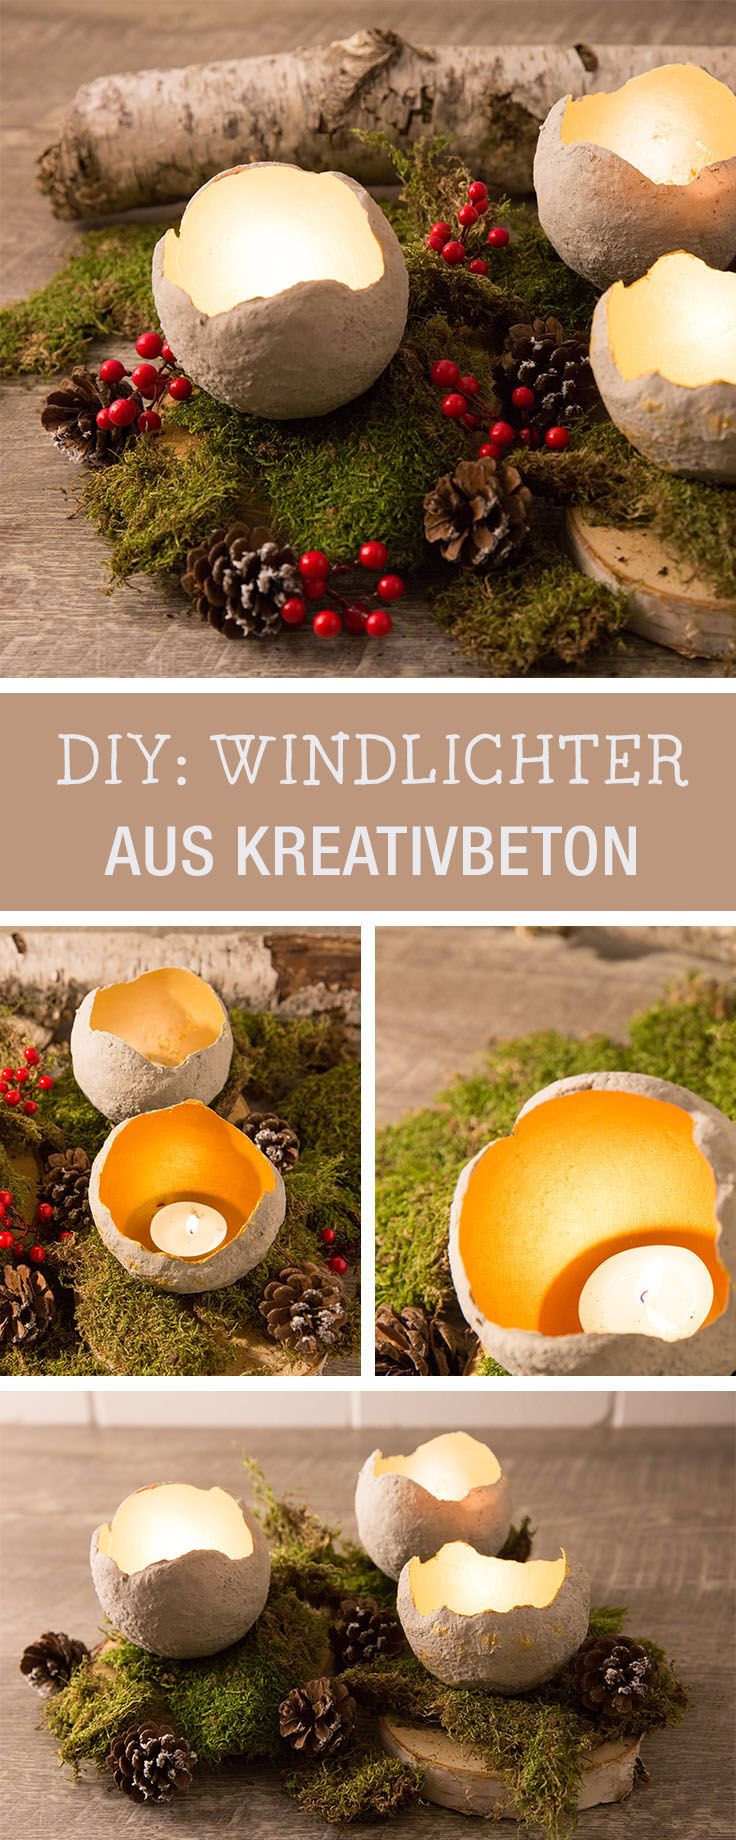 diy anleitung windlichter aus beton selber machen via pinterest windlicht. Black Bedroom Furniture Sets. Home Design Ideas